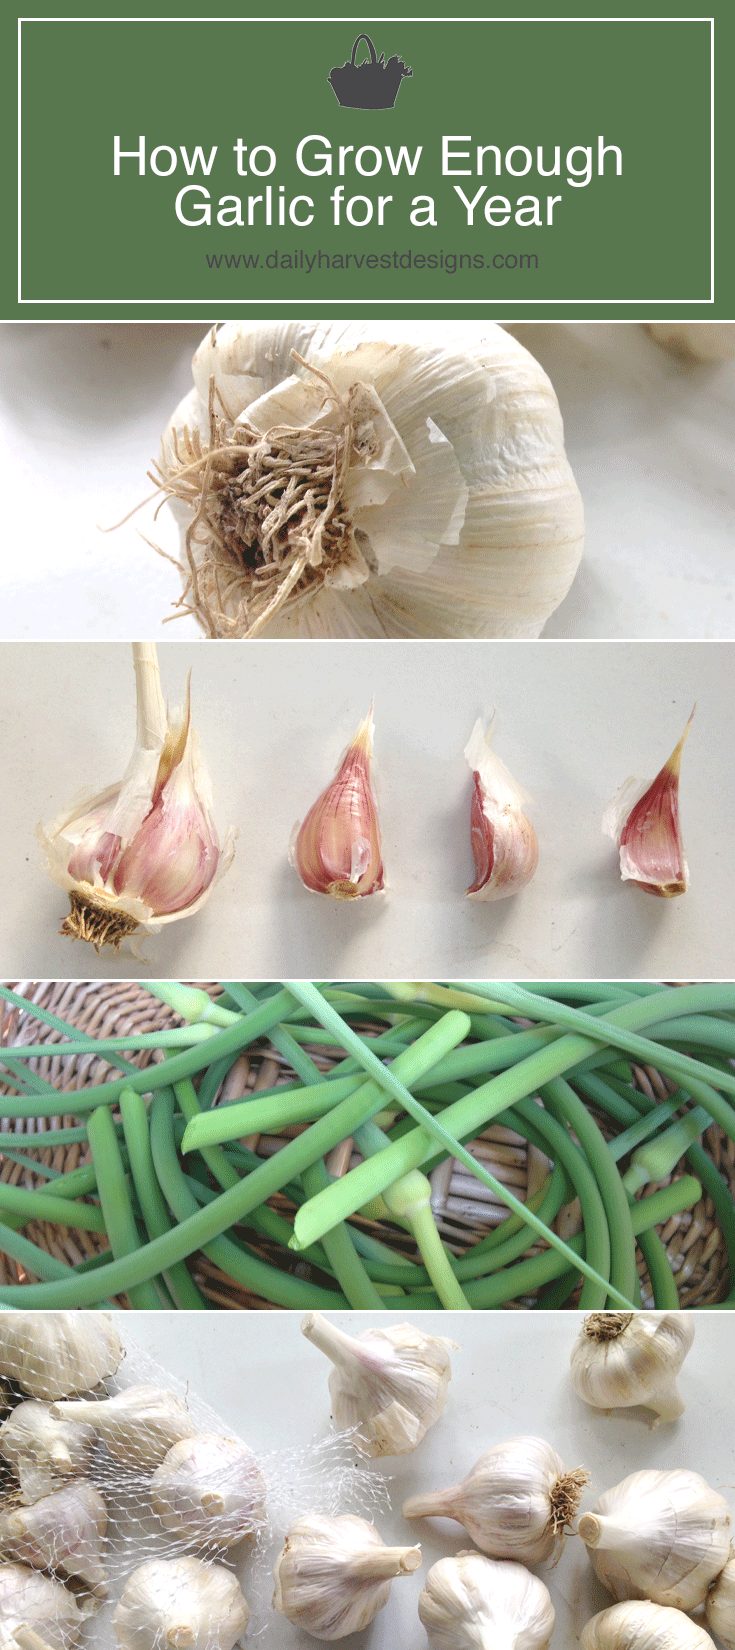 Garlic-for-a-year.png